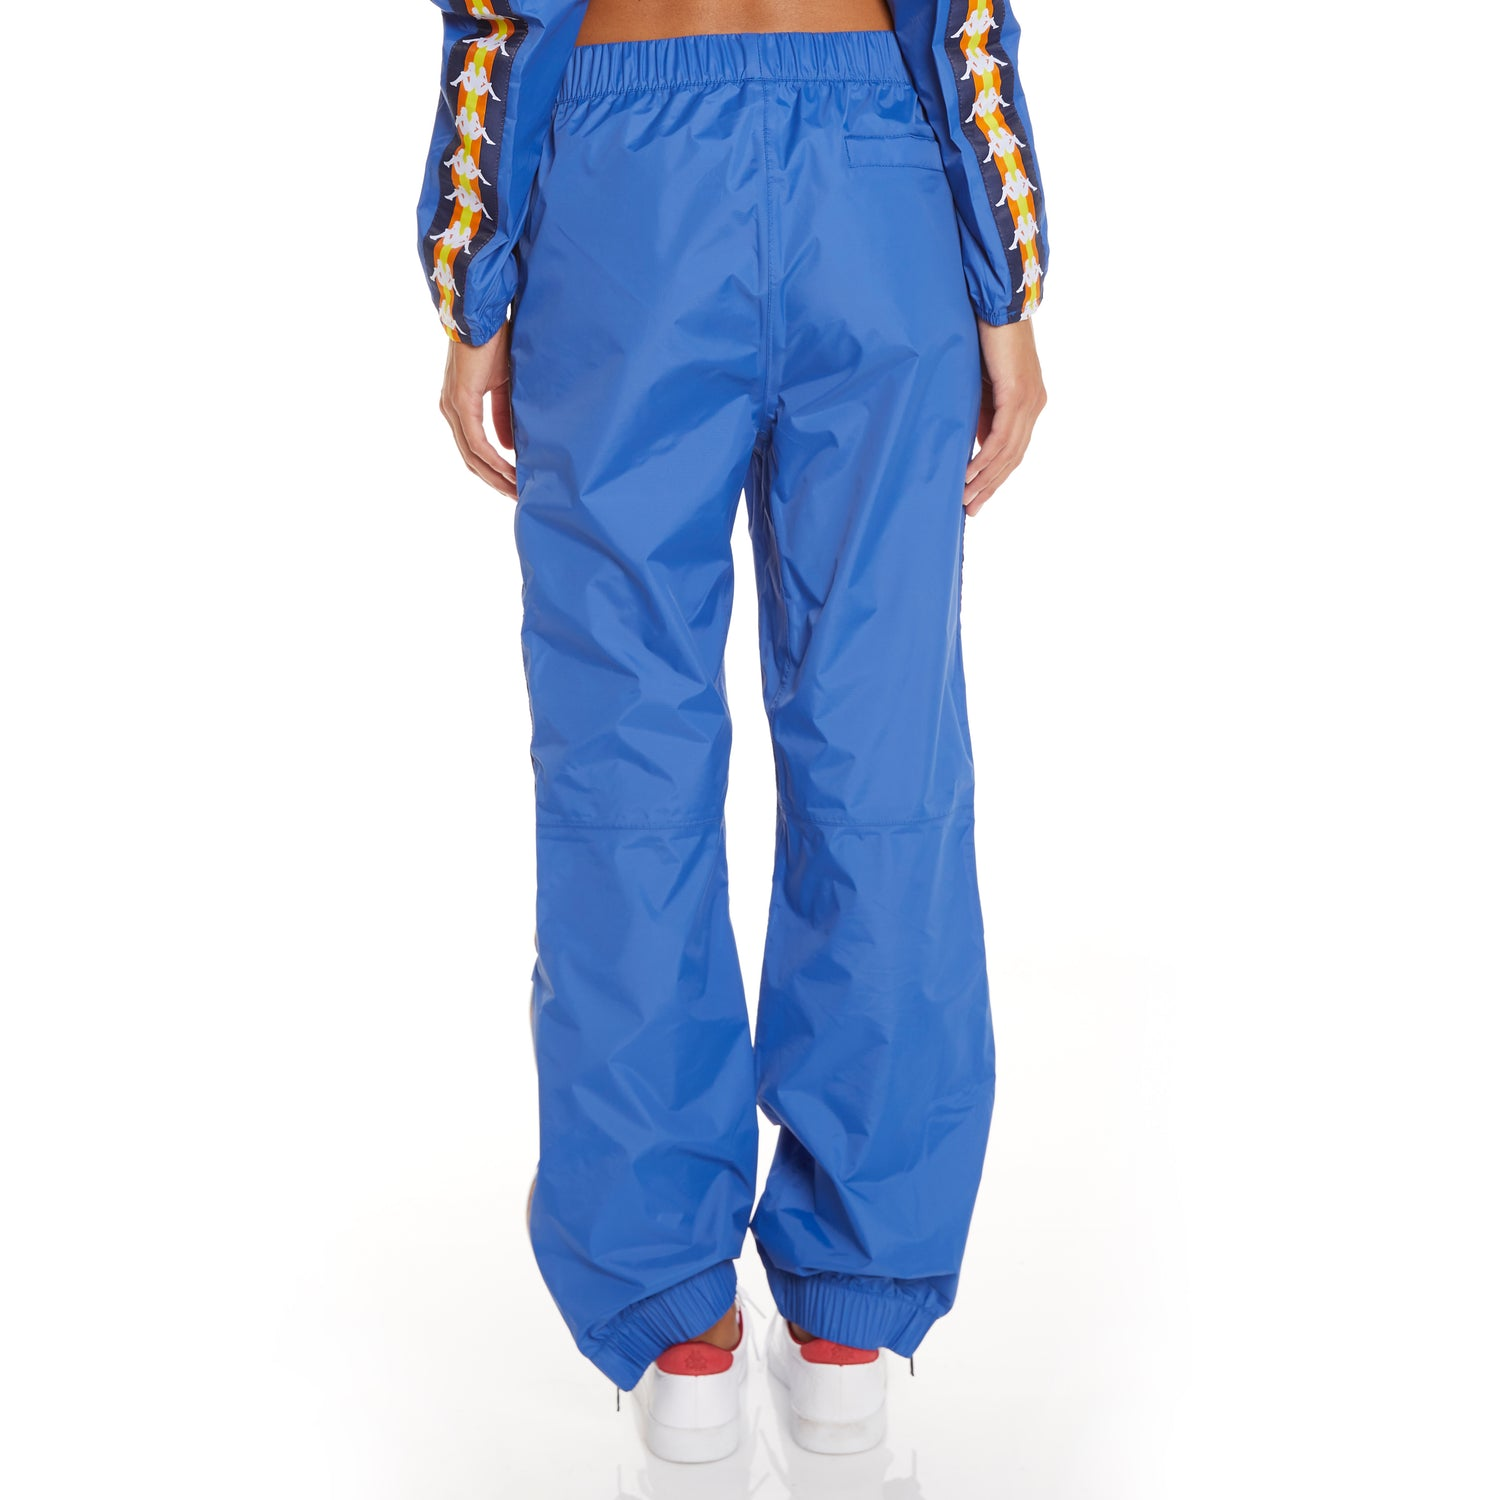 Women's K-Way X Kappa Le Vrai 3.0 Edgard Banda Blue Royal - Back